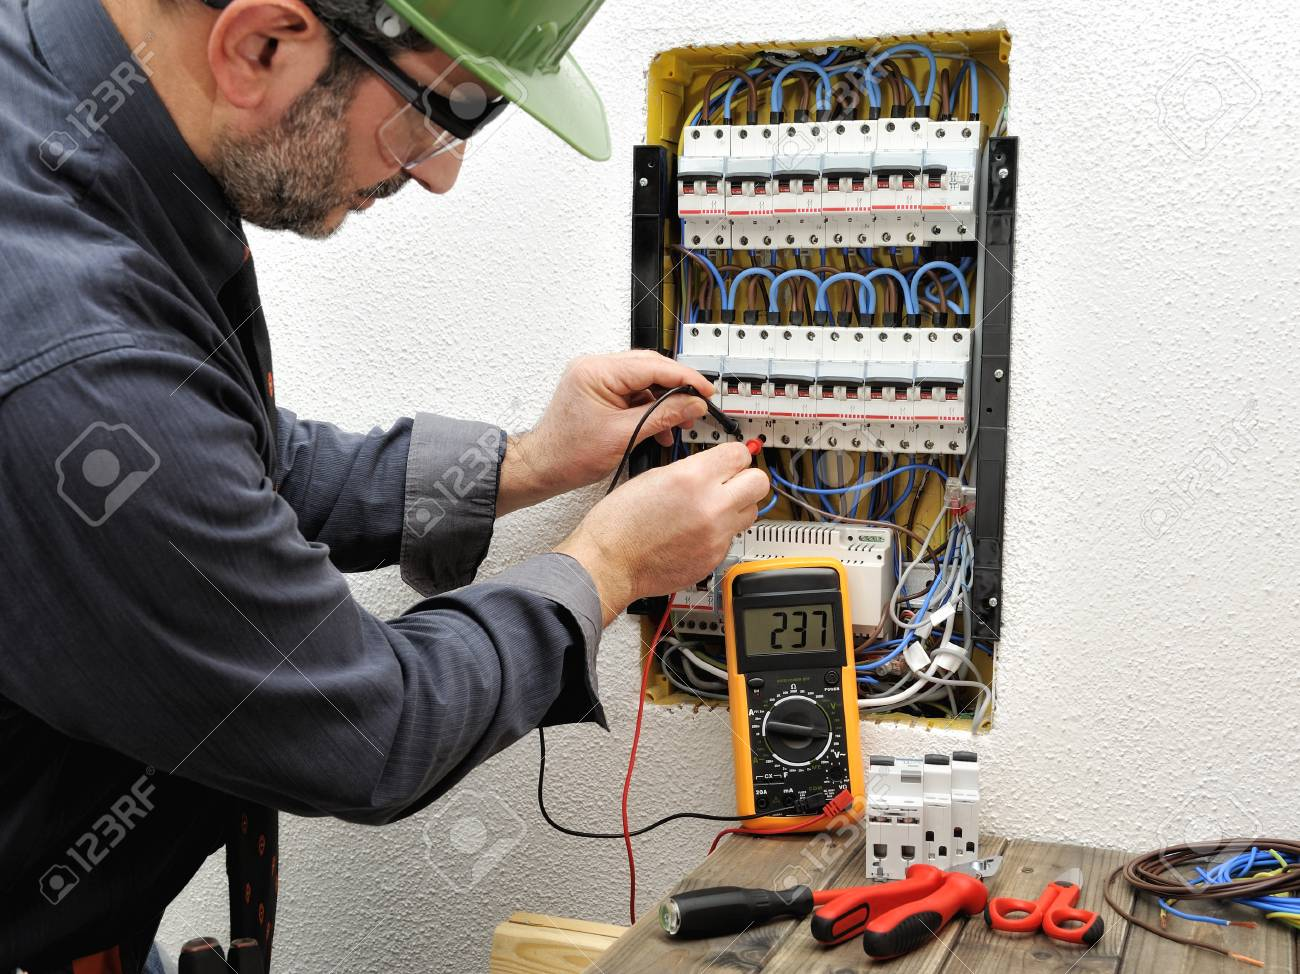 Technical Electrician Measures The Voltage Of A Circuit Breaker ...